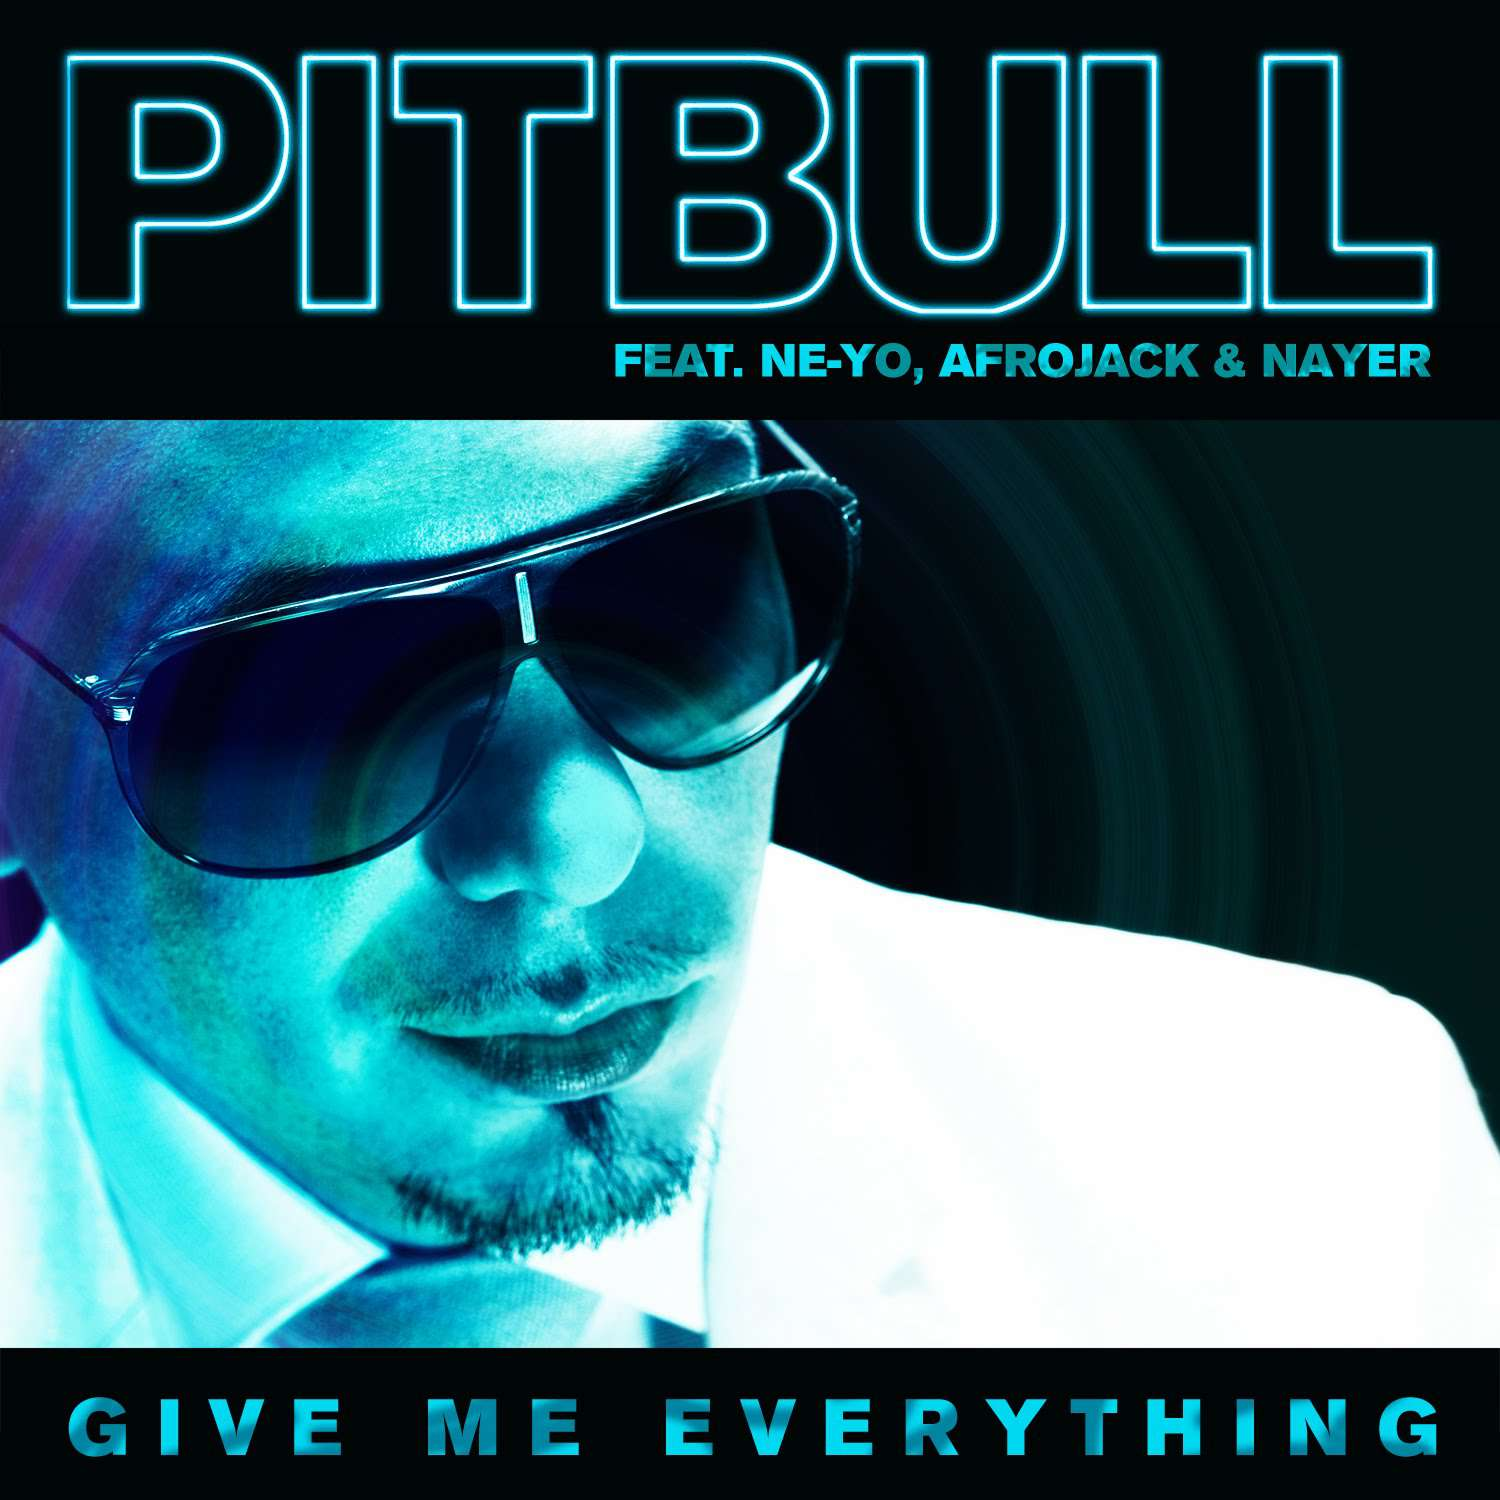 download pitbull feat christina aguilera - feel this moment